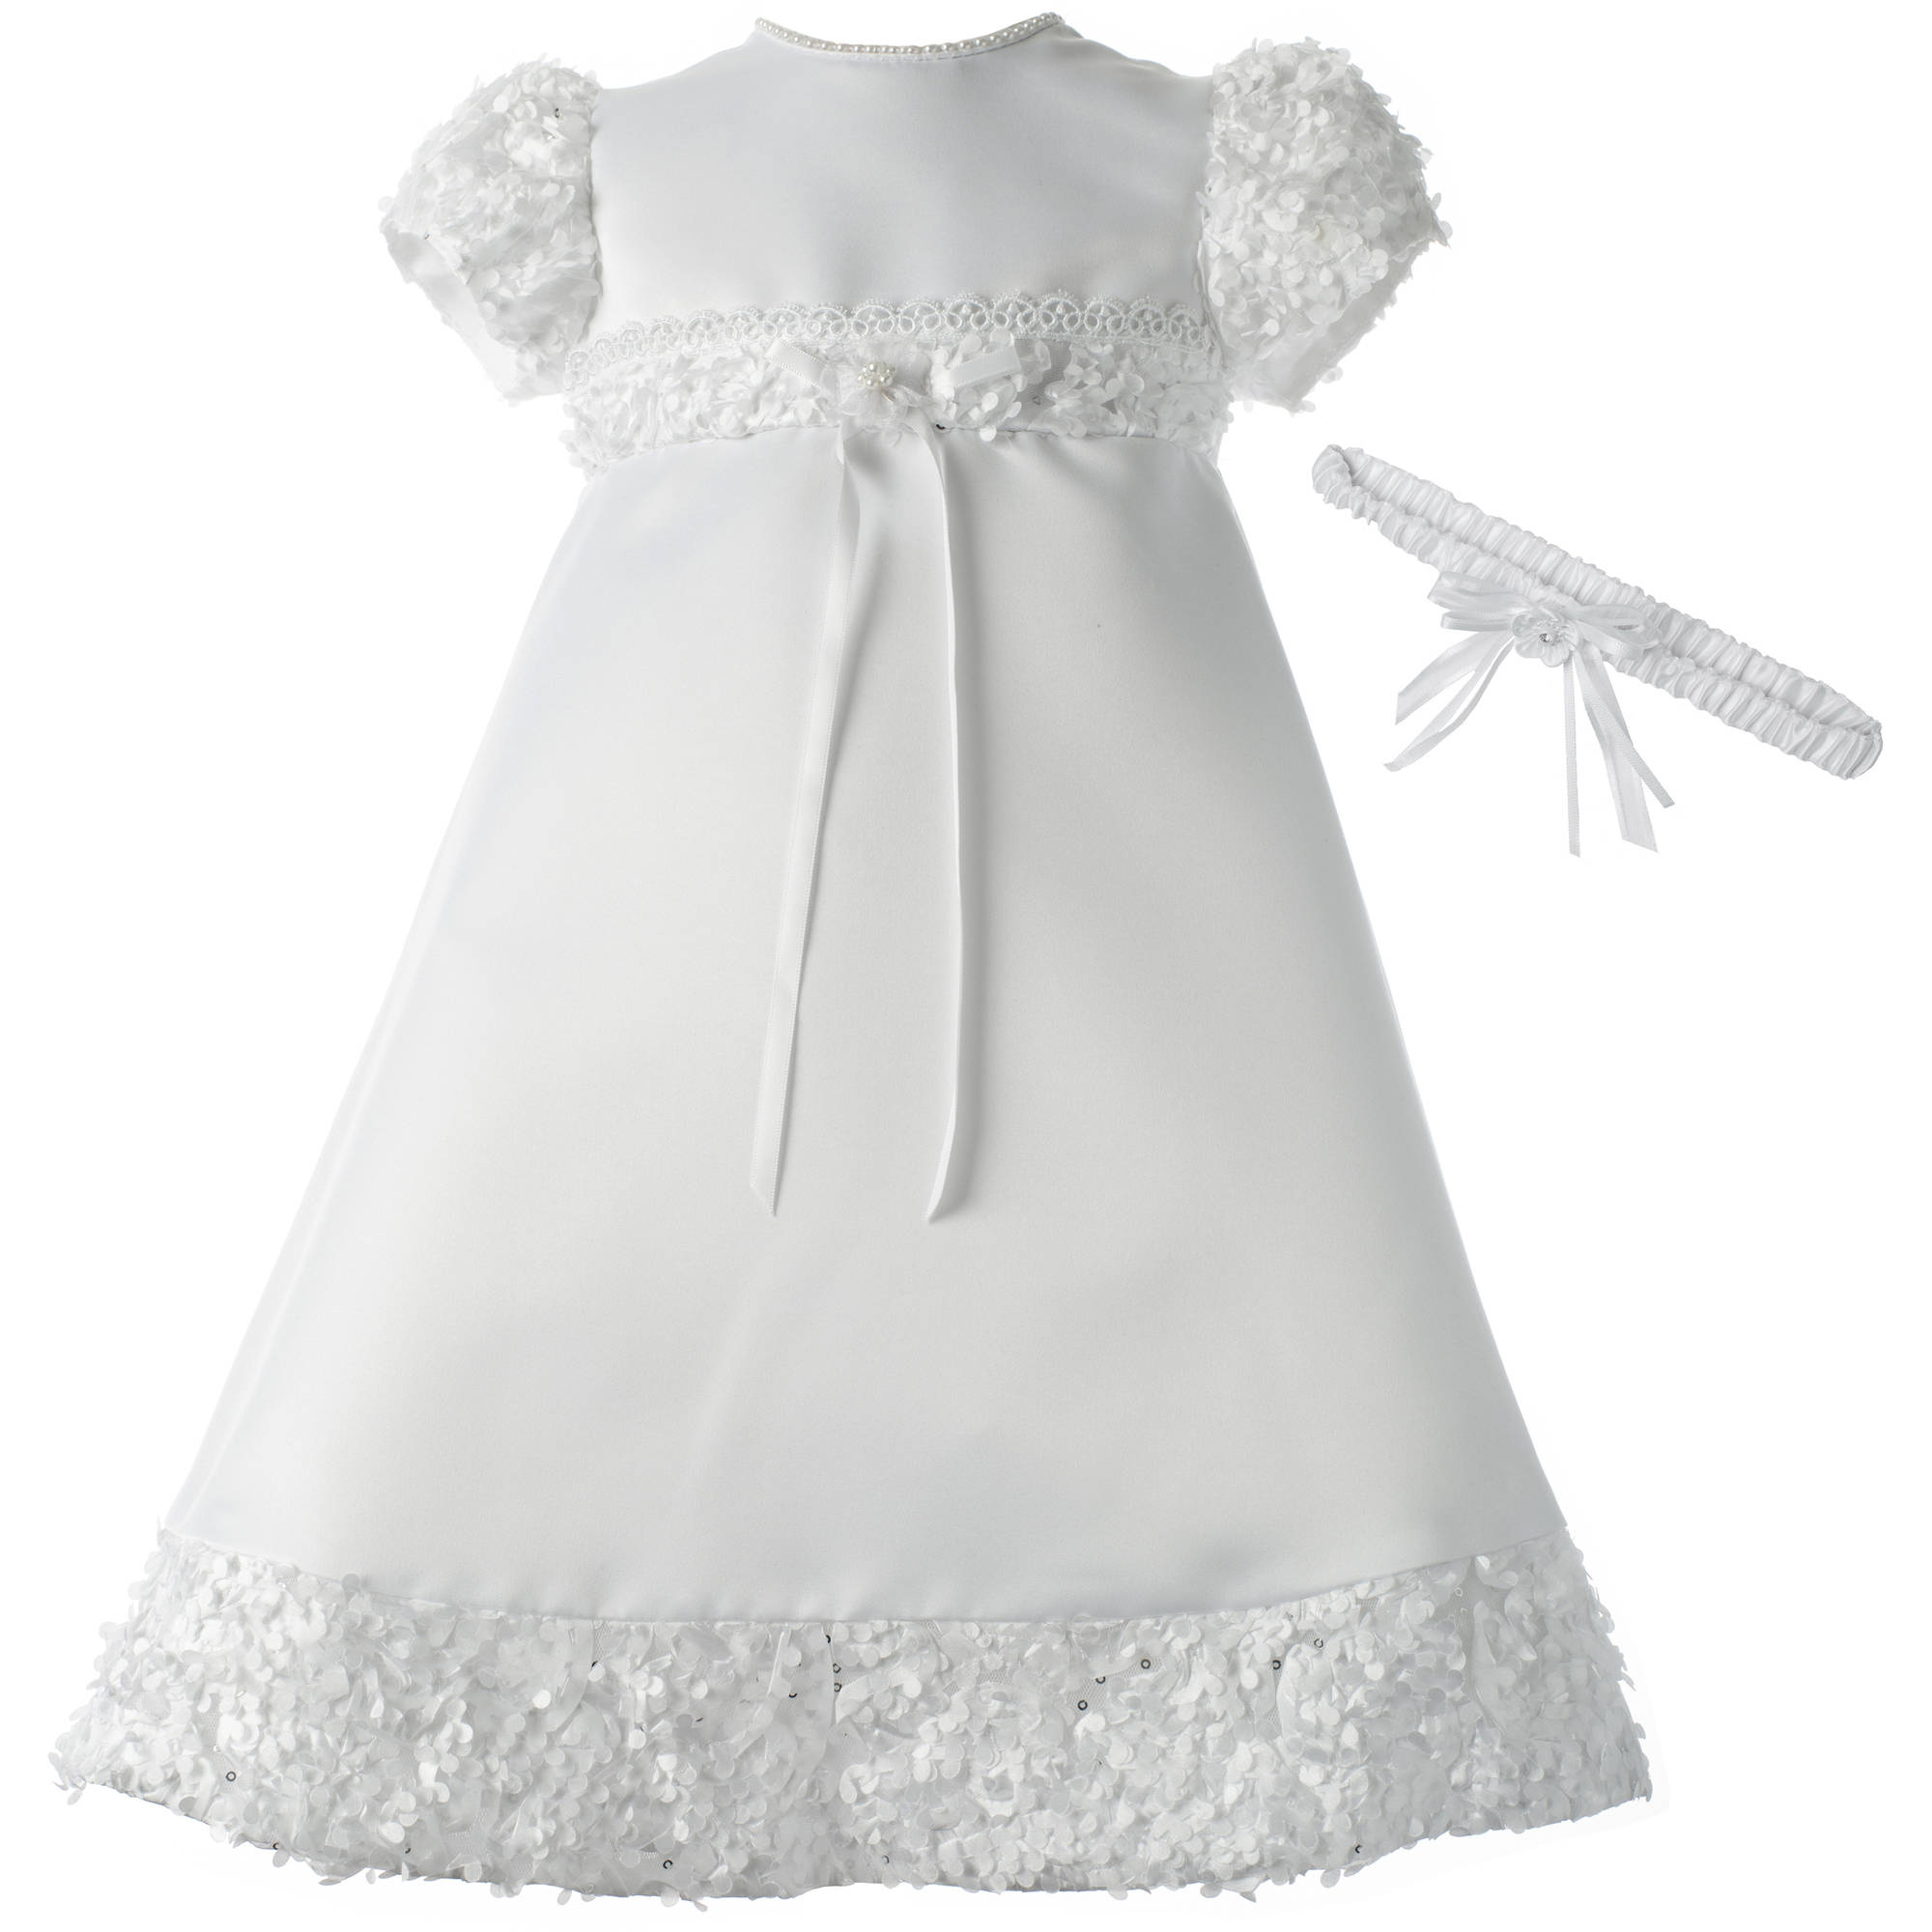 Christening Baptism Newborn Baby Girl Special Occasion Satin Dress Gown Outfit With Floral Soutache Trim